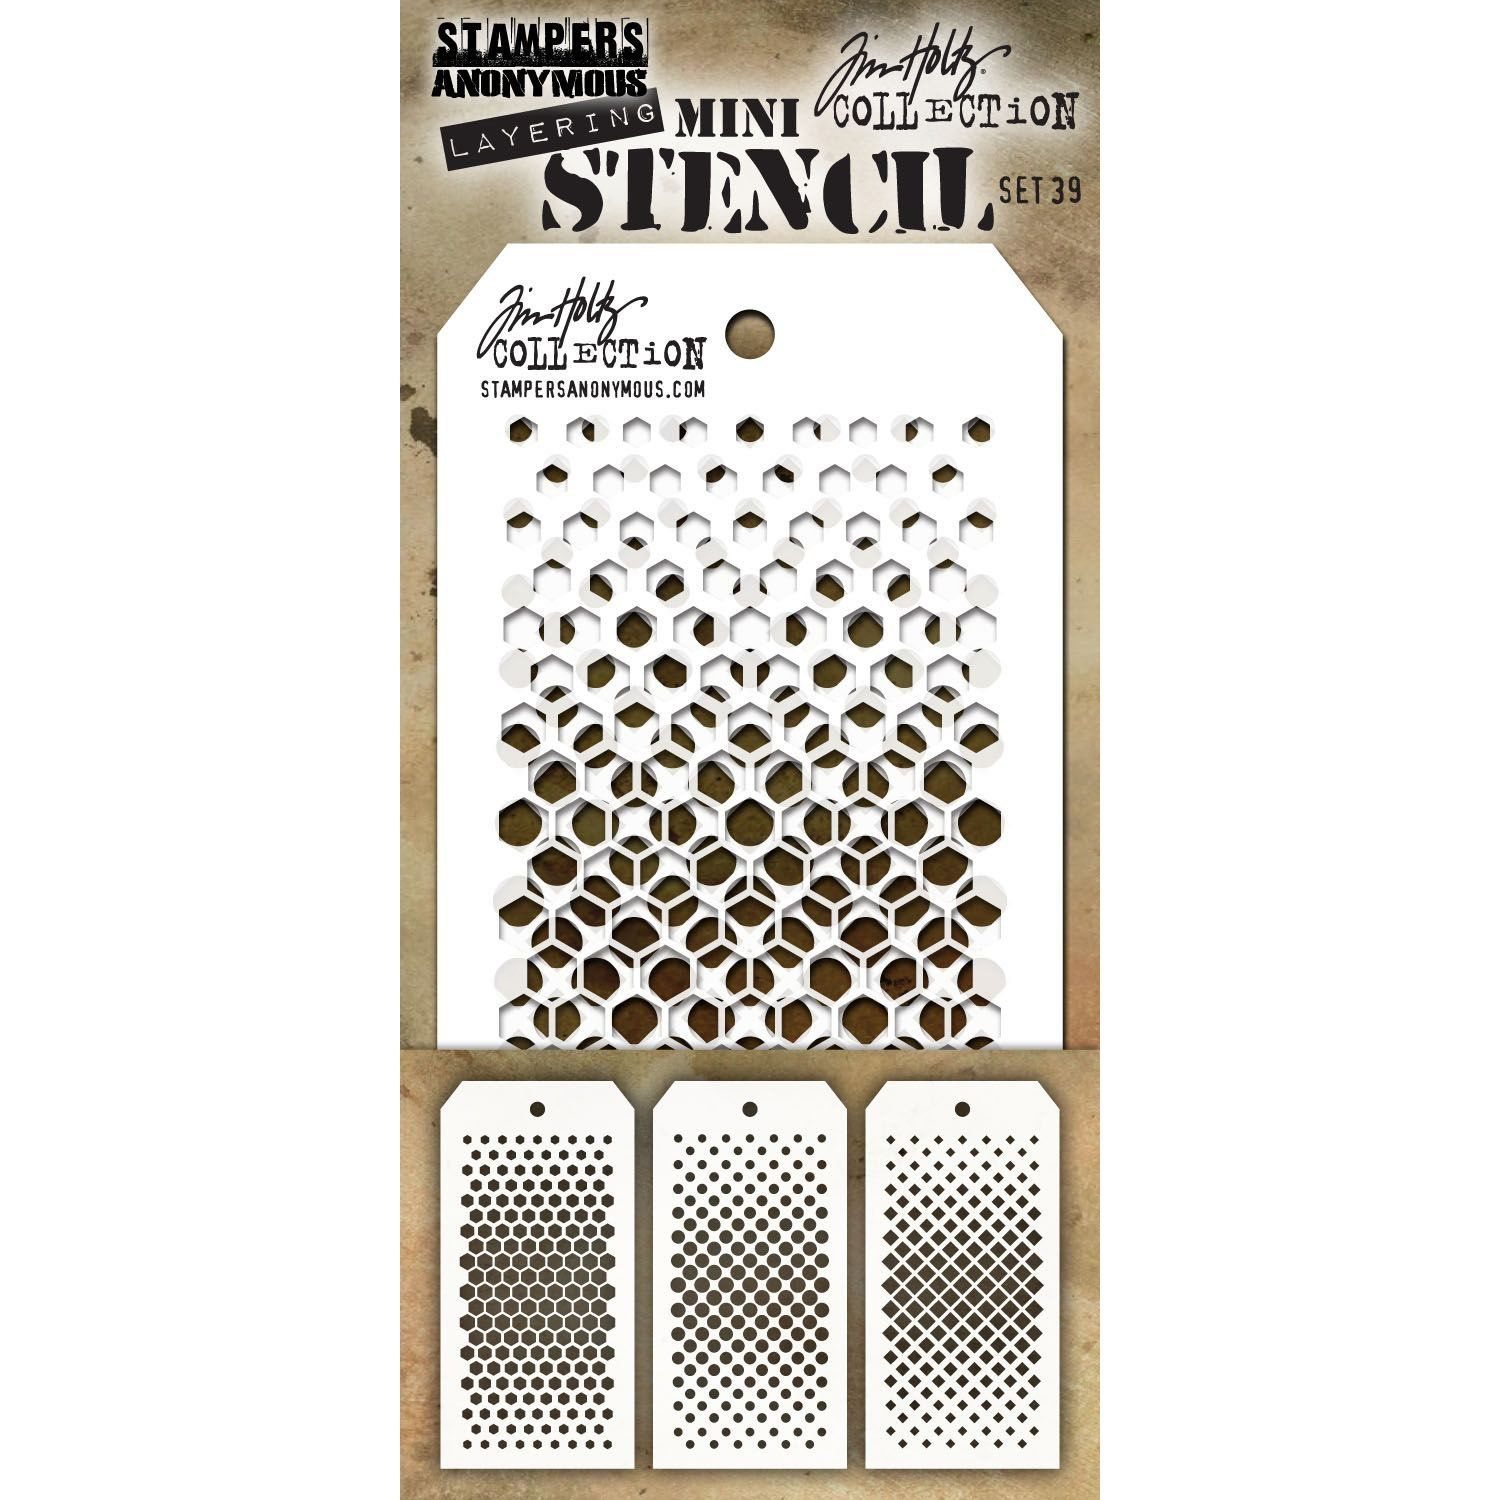 Stampers Anonymous Layering Stencil Mini